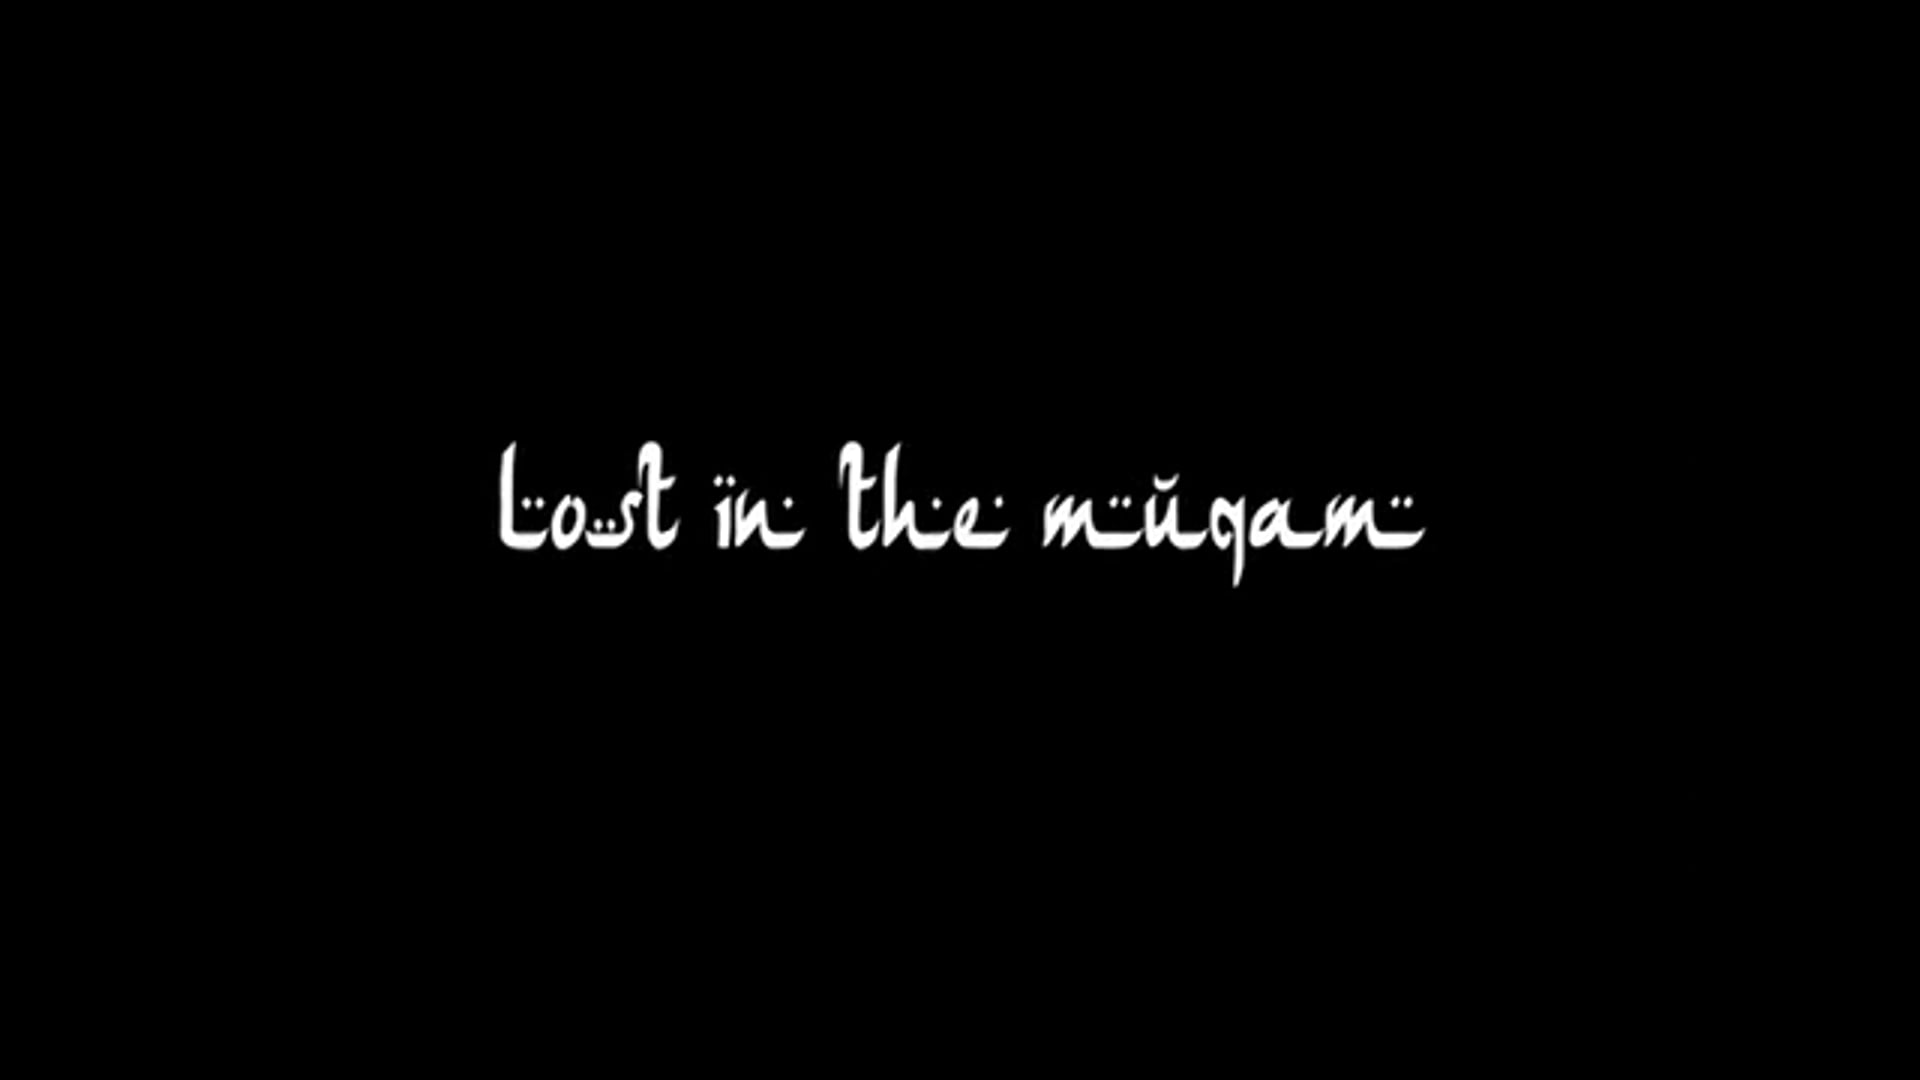 Lost in the Muqam - full length